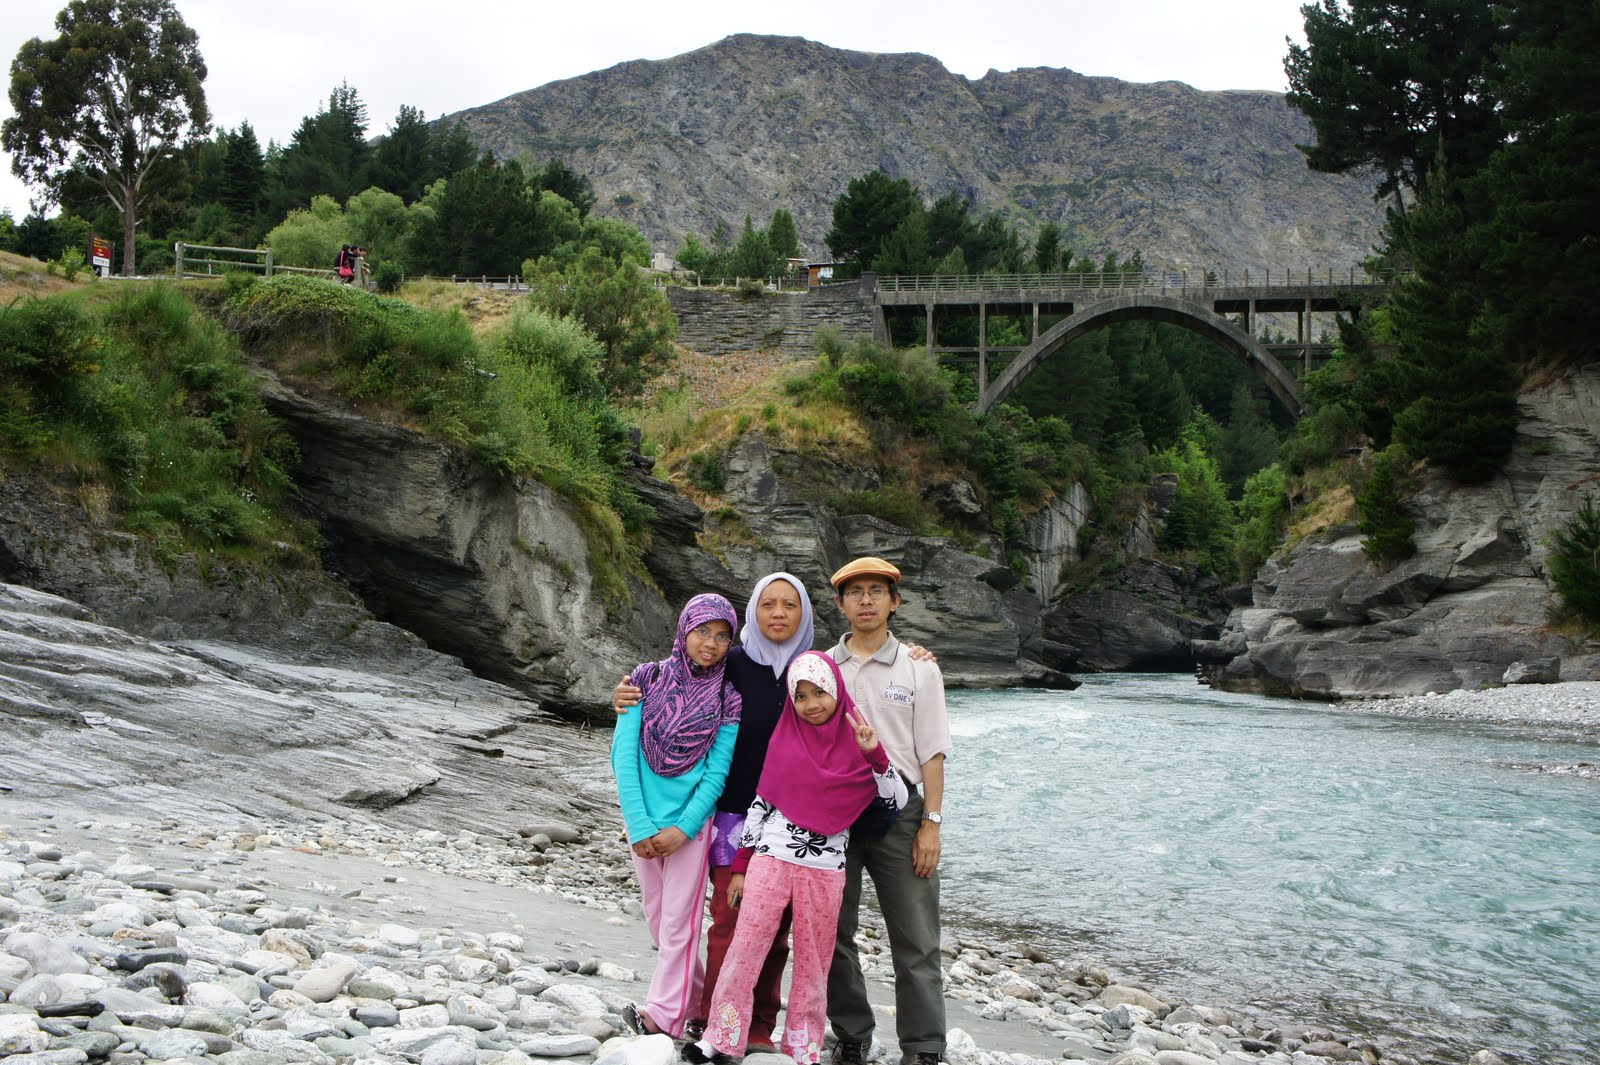 Bersantaian di shotover river